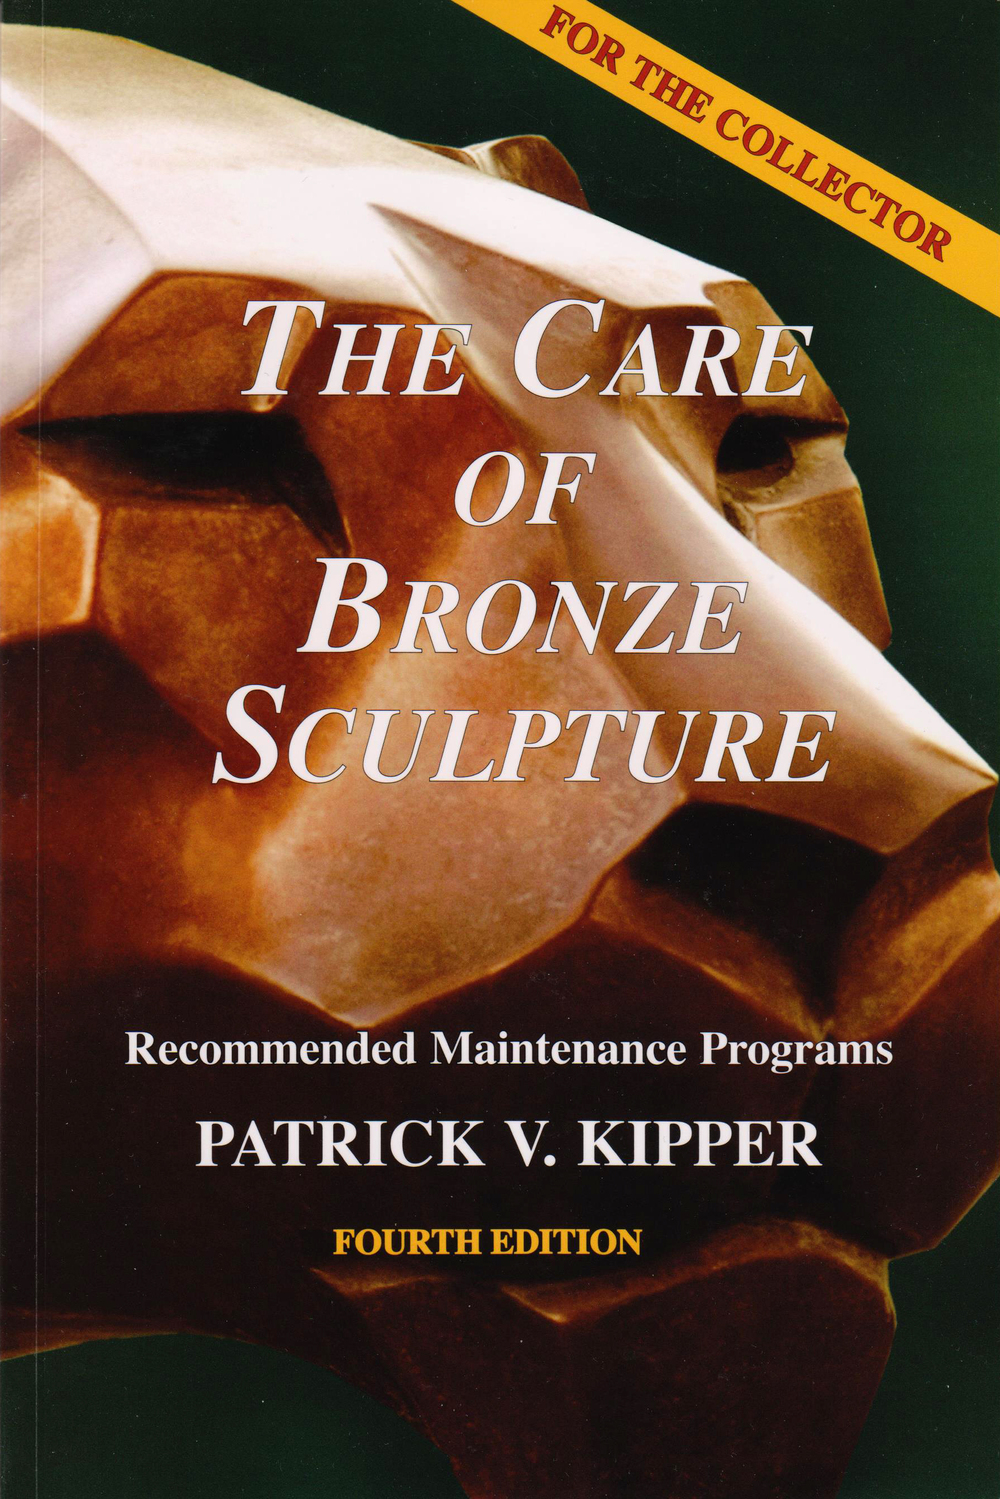 the-care-of-bronze-sculpture-by-PV-Kipper 001.jpg